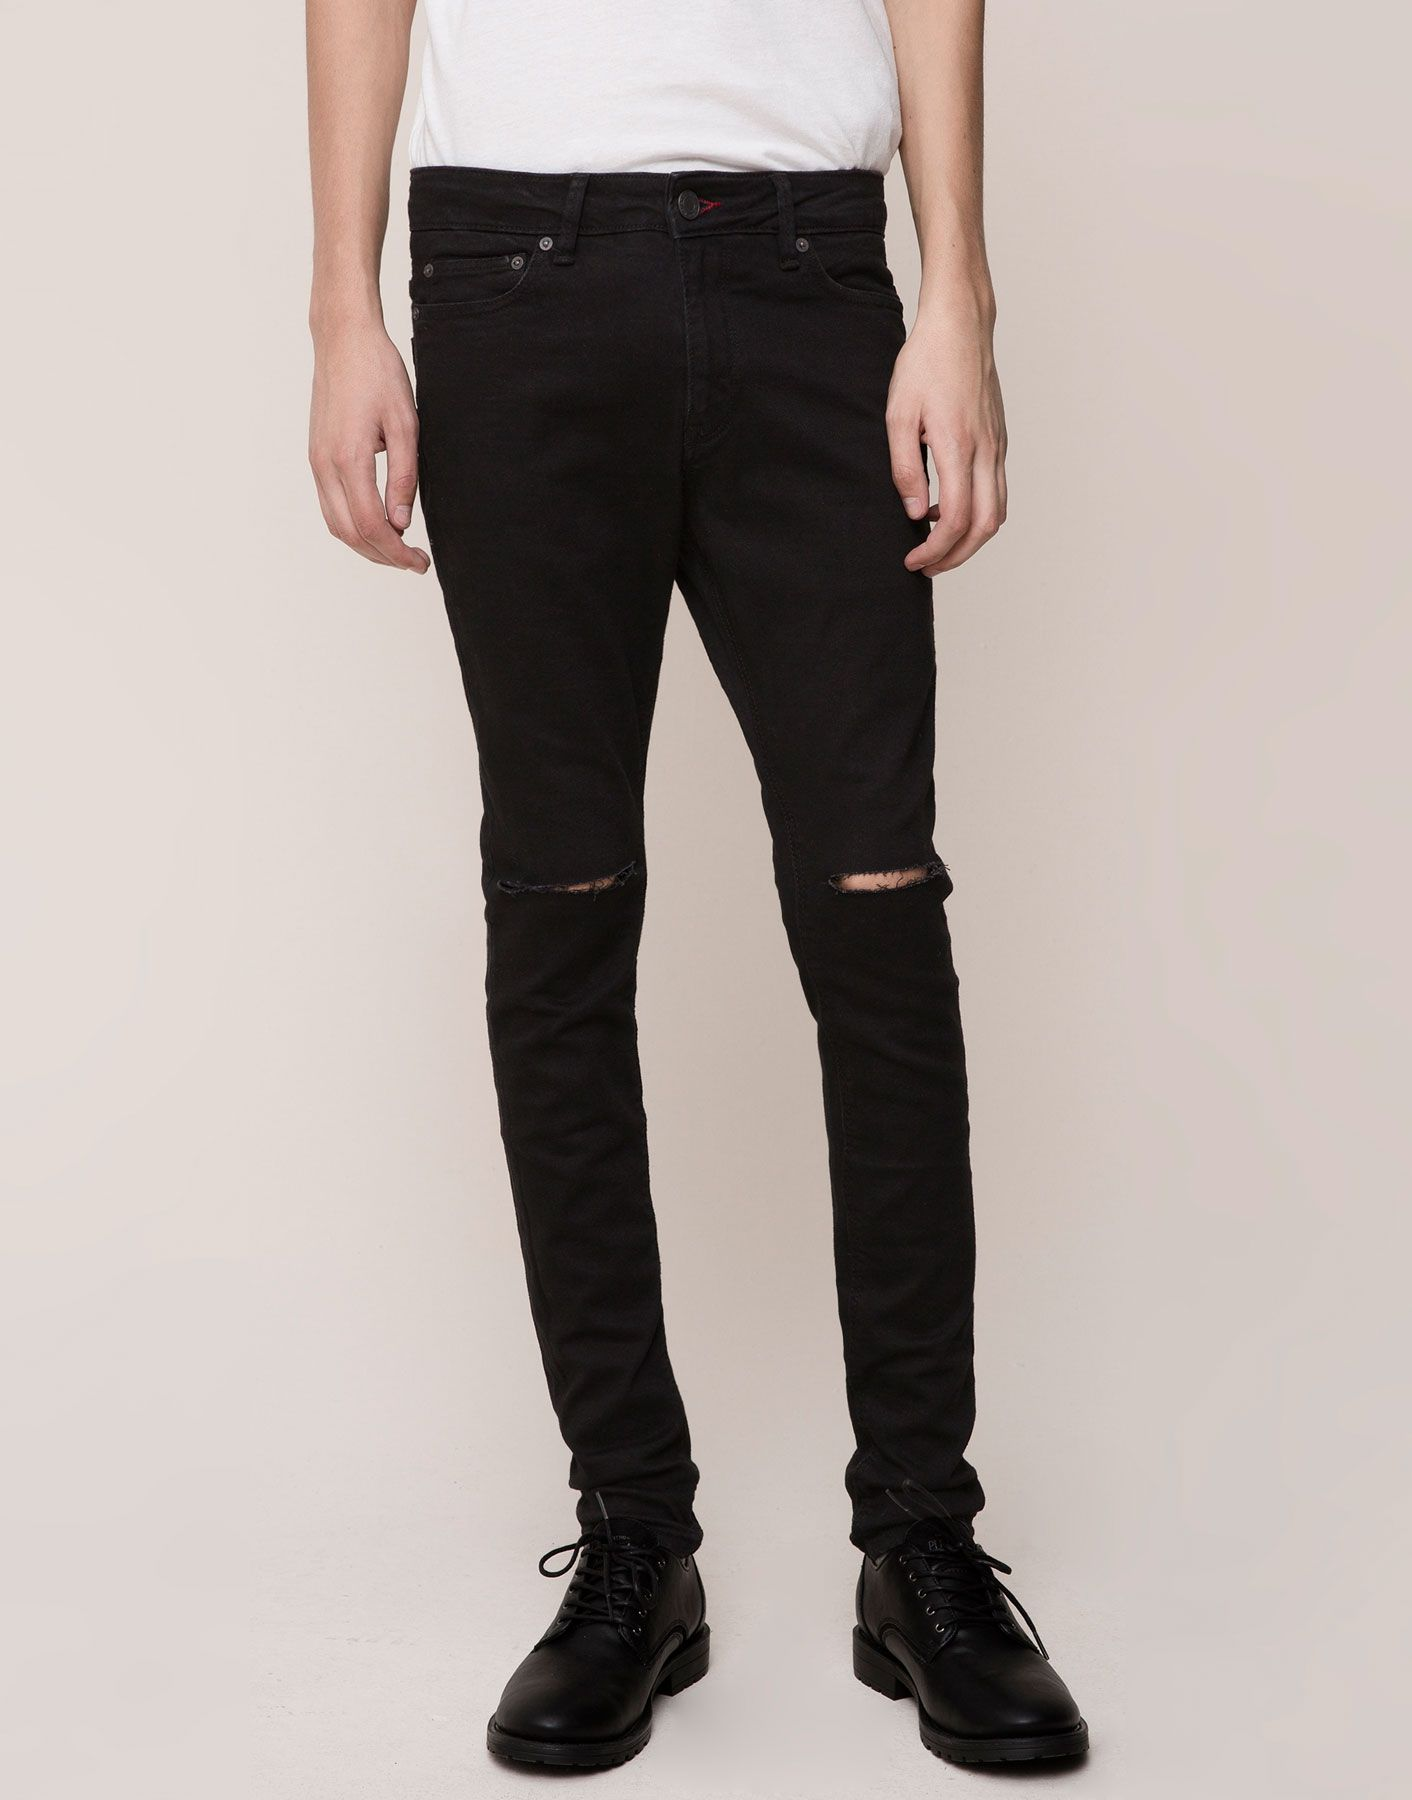 Schwarze Jeans Super Skinny Fit Mit Rissen Am Knie Fashion